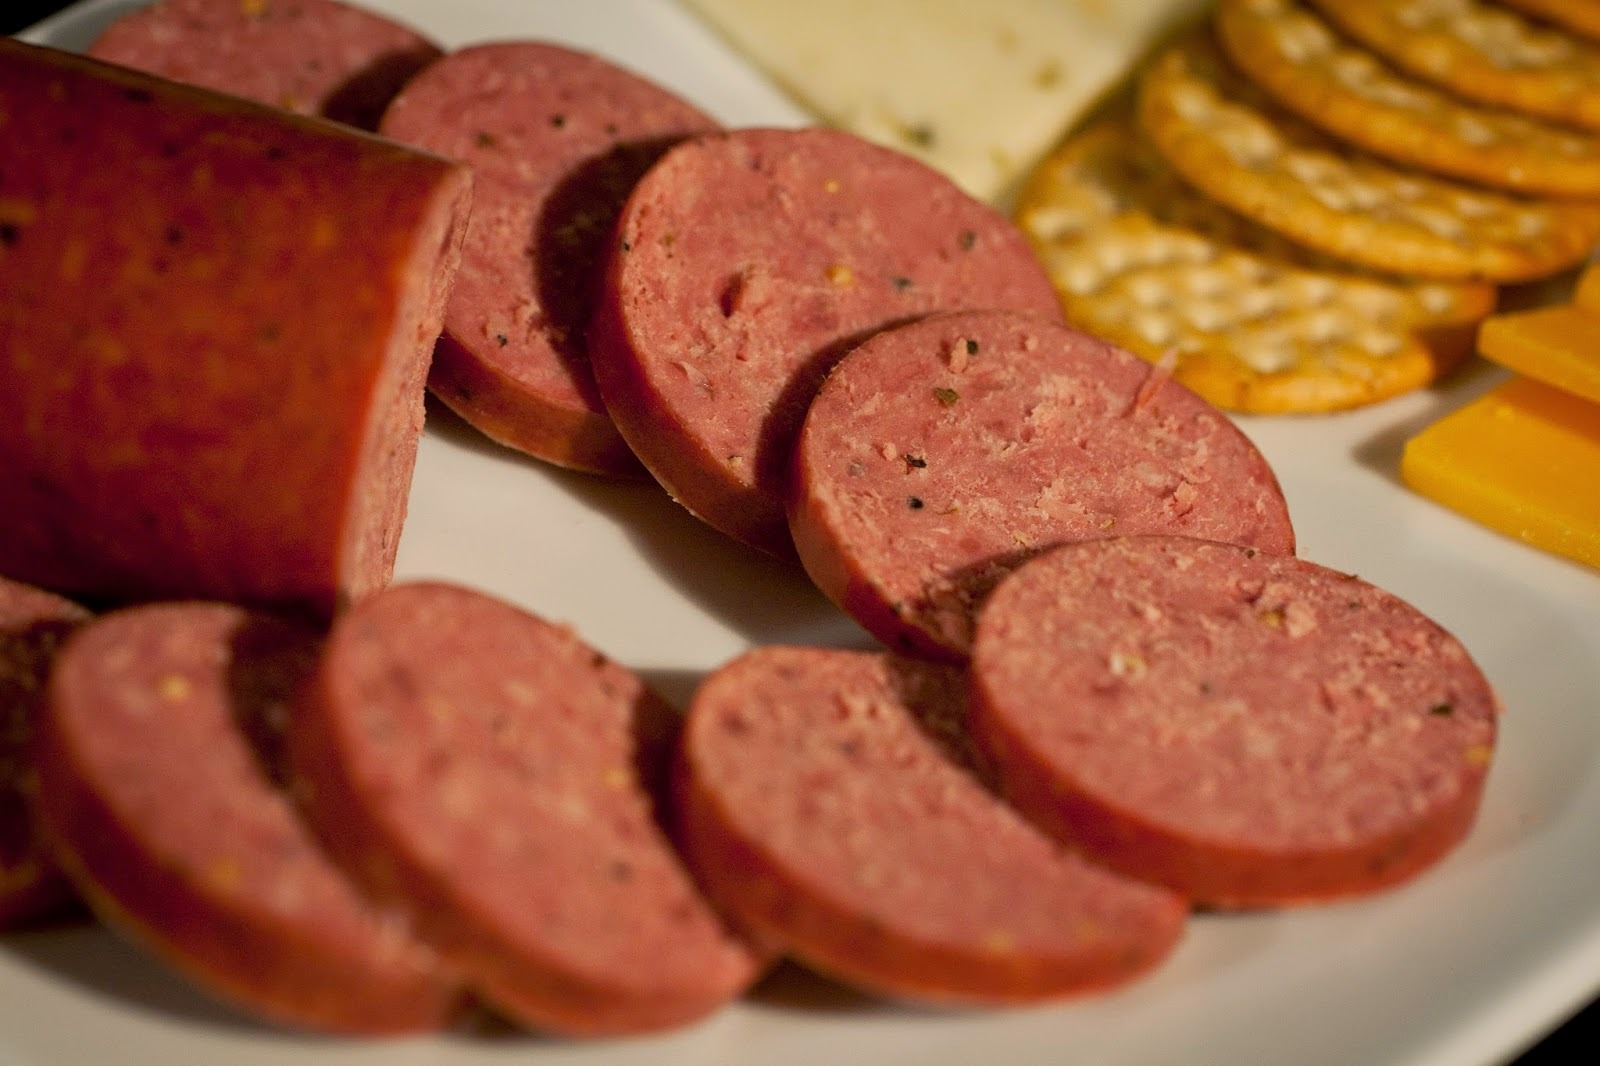 http://www.nebraskabison.com/collections/bison-sausages/products/bison-summer-sausage